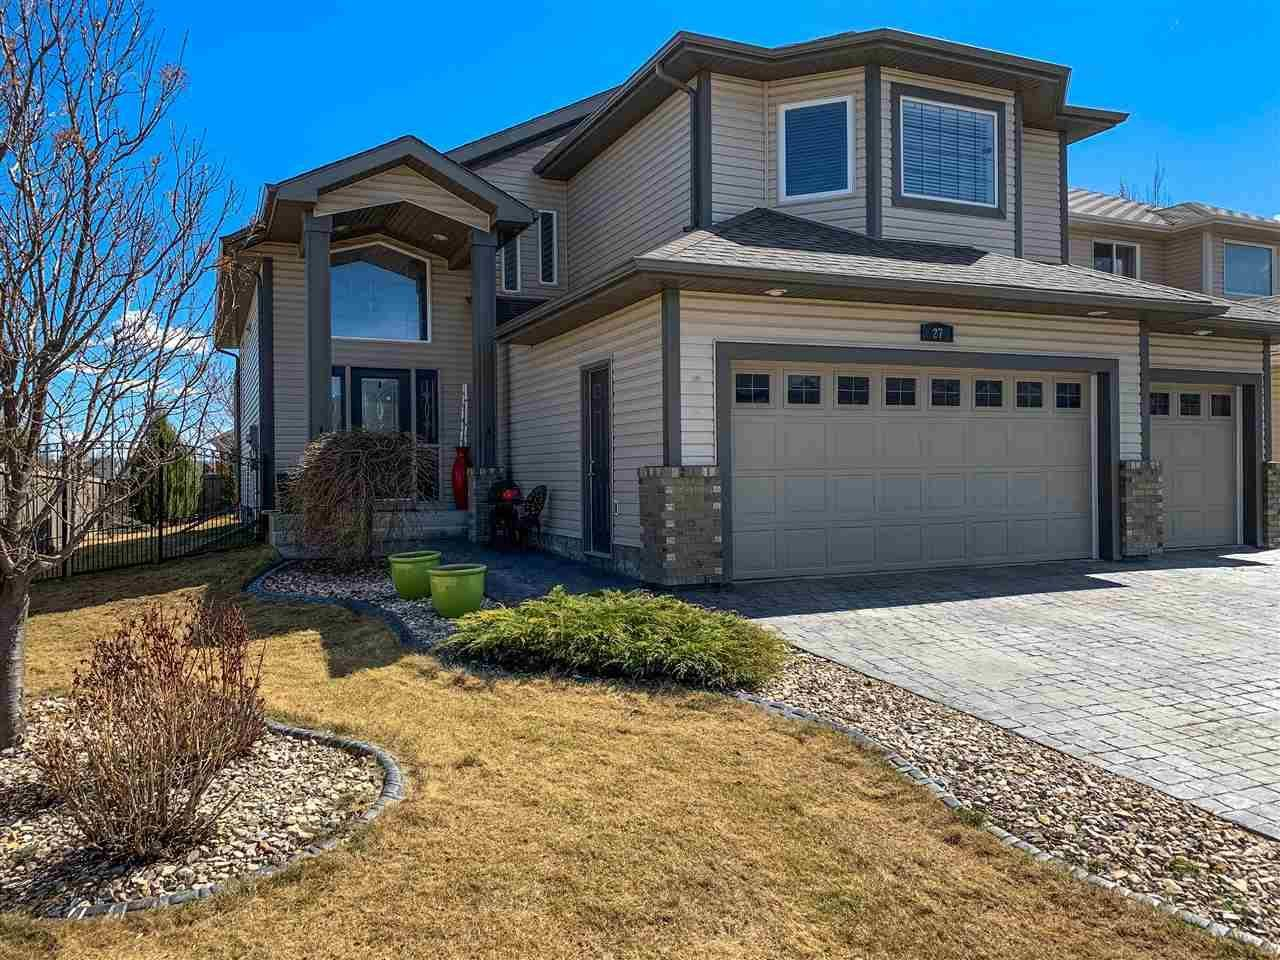 House for sale at 27 Linksview Pl Spruce Grove Alberta - MLS: E4195661